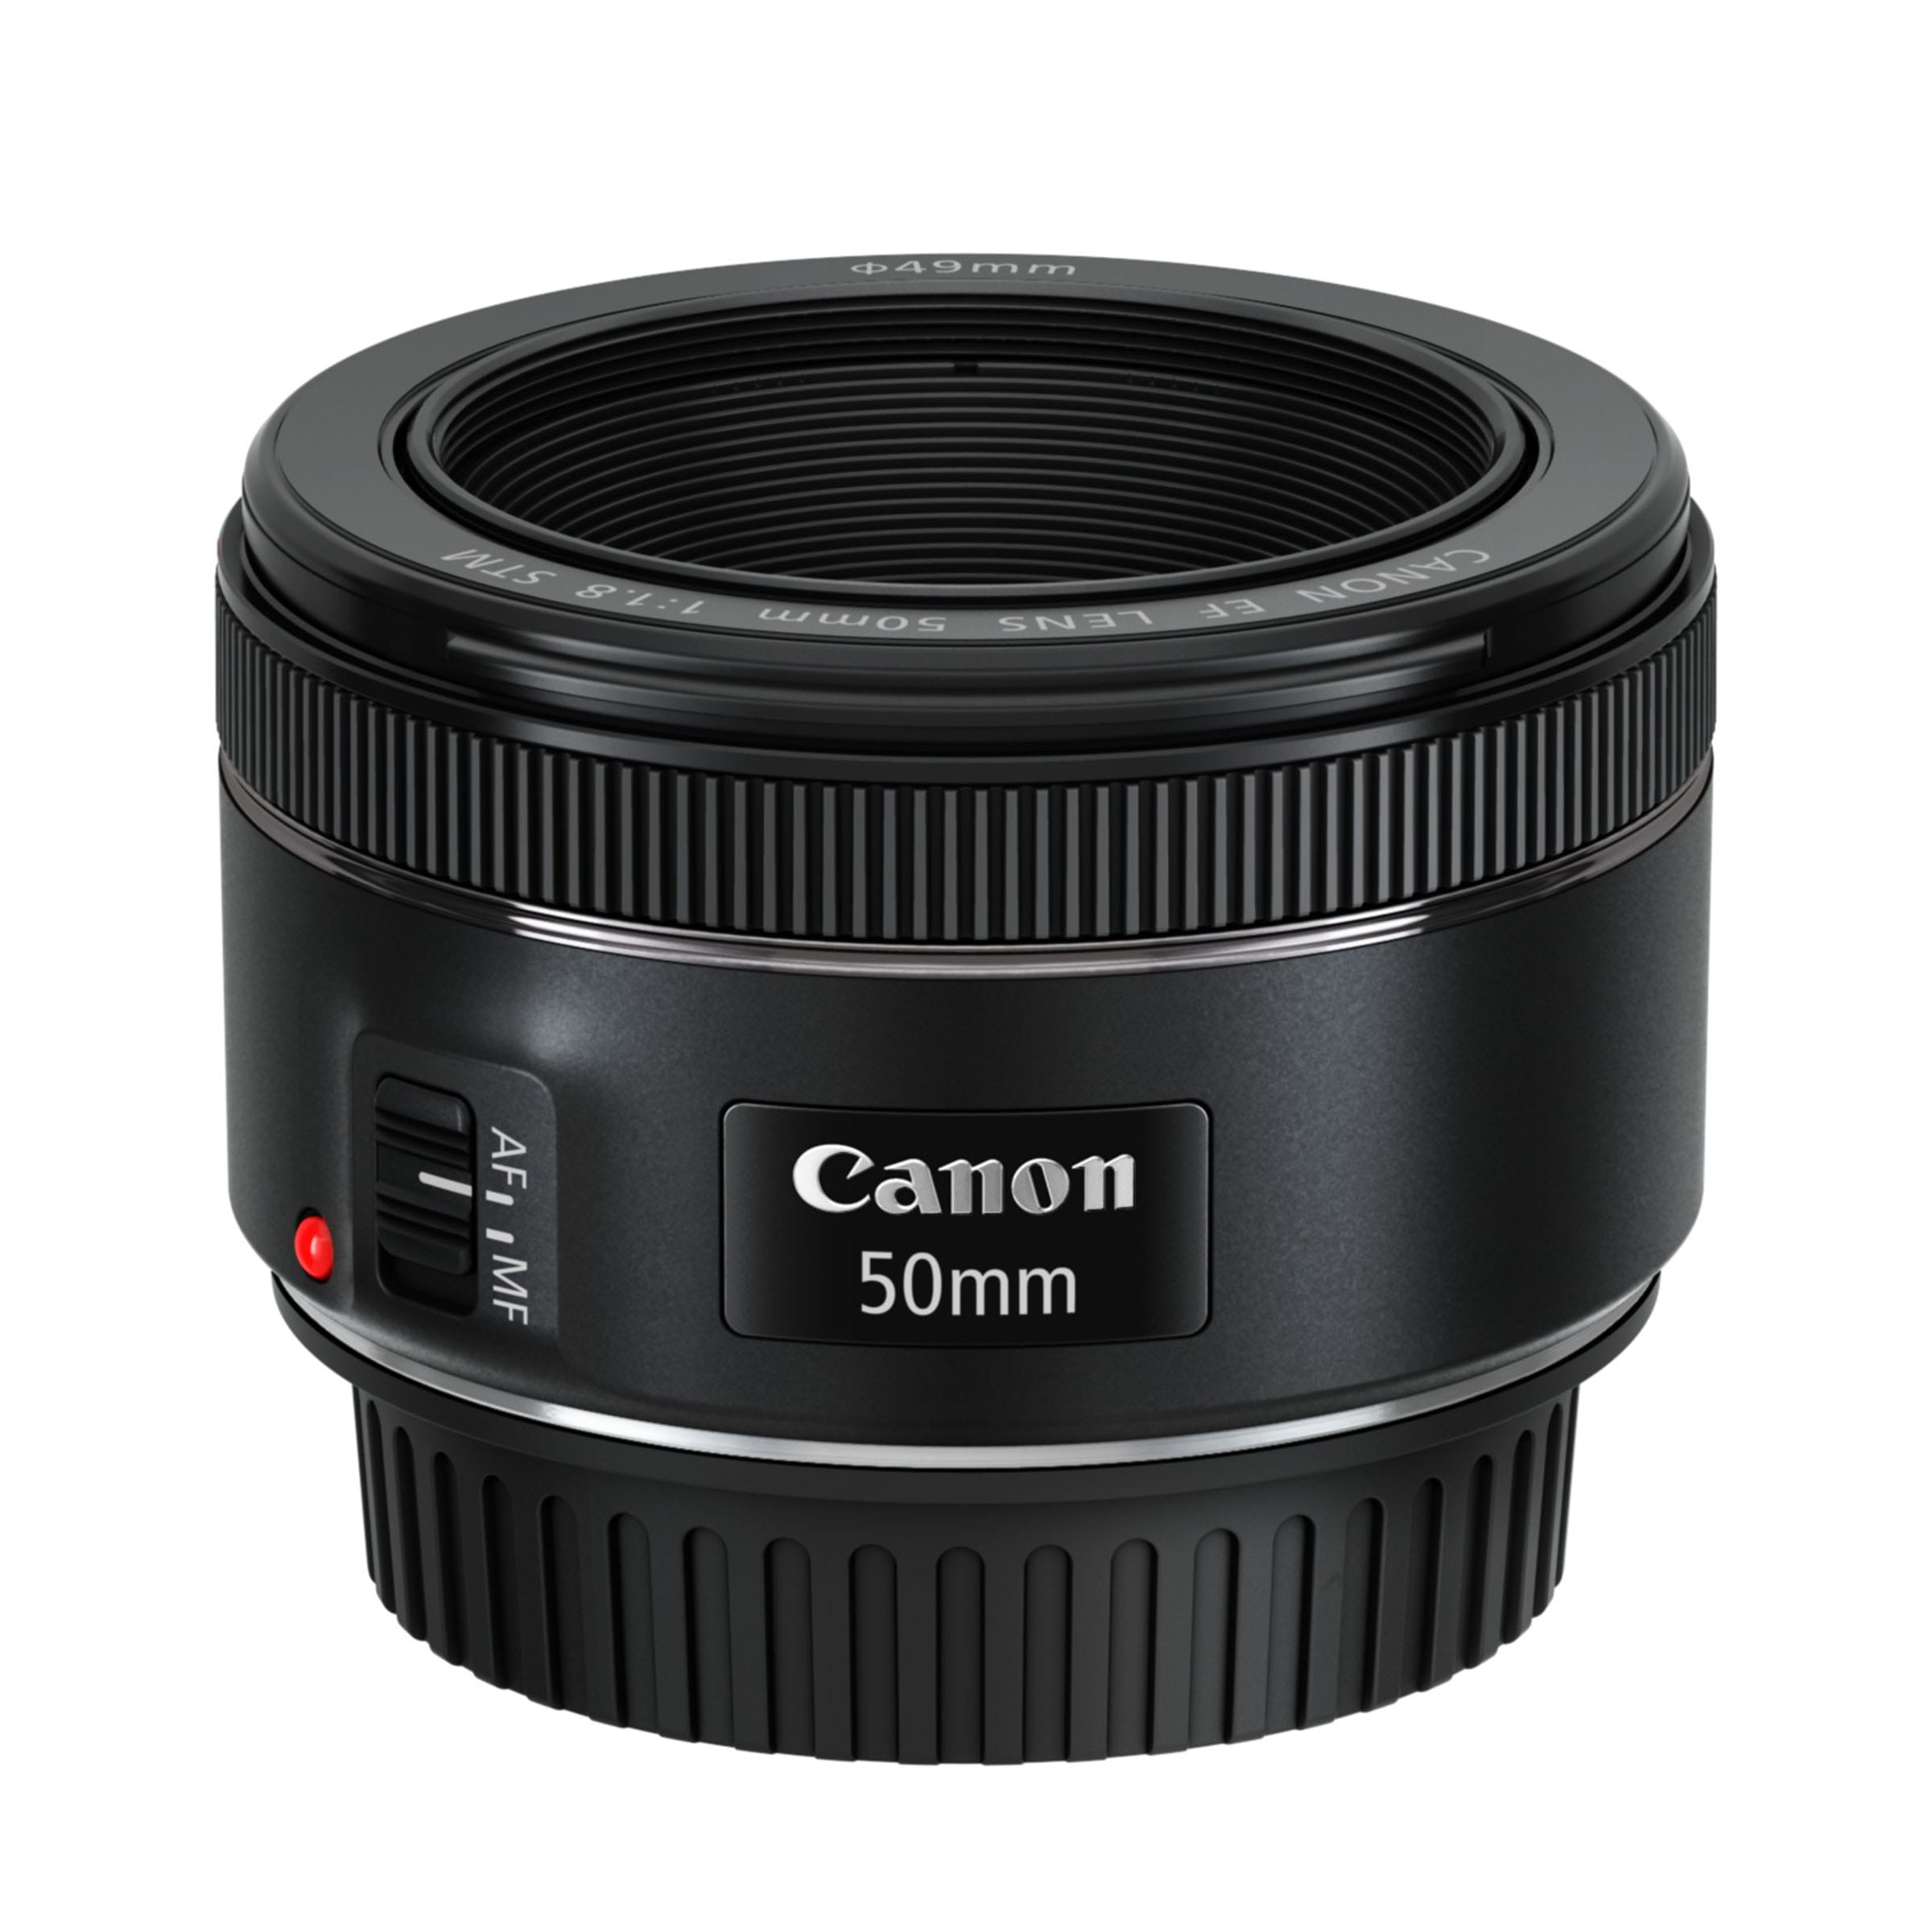 EF 50mm f1.8 STM_Slant_with_cap